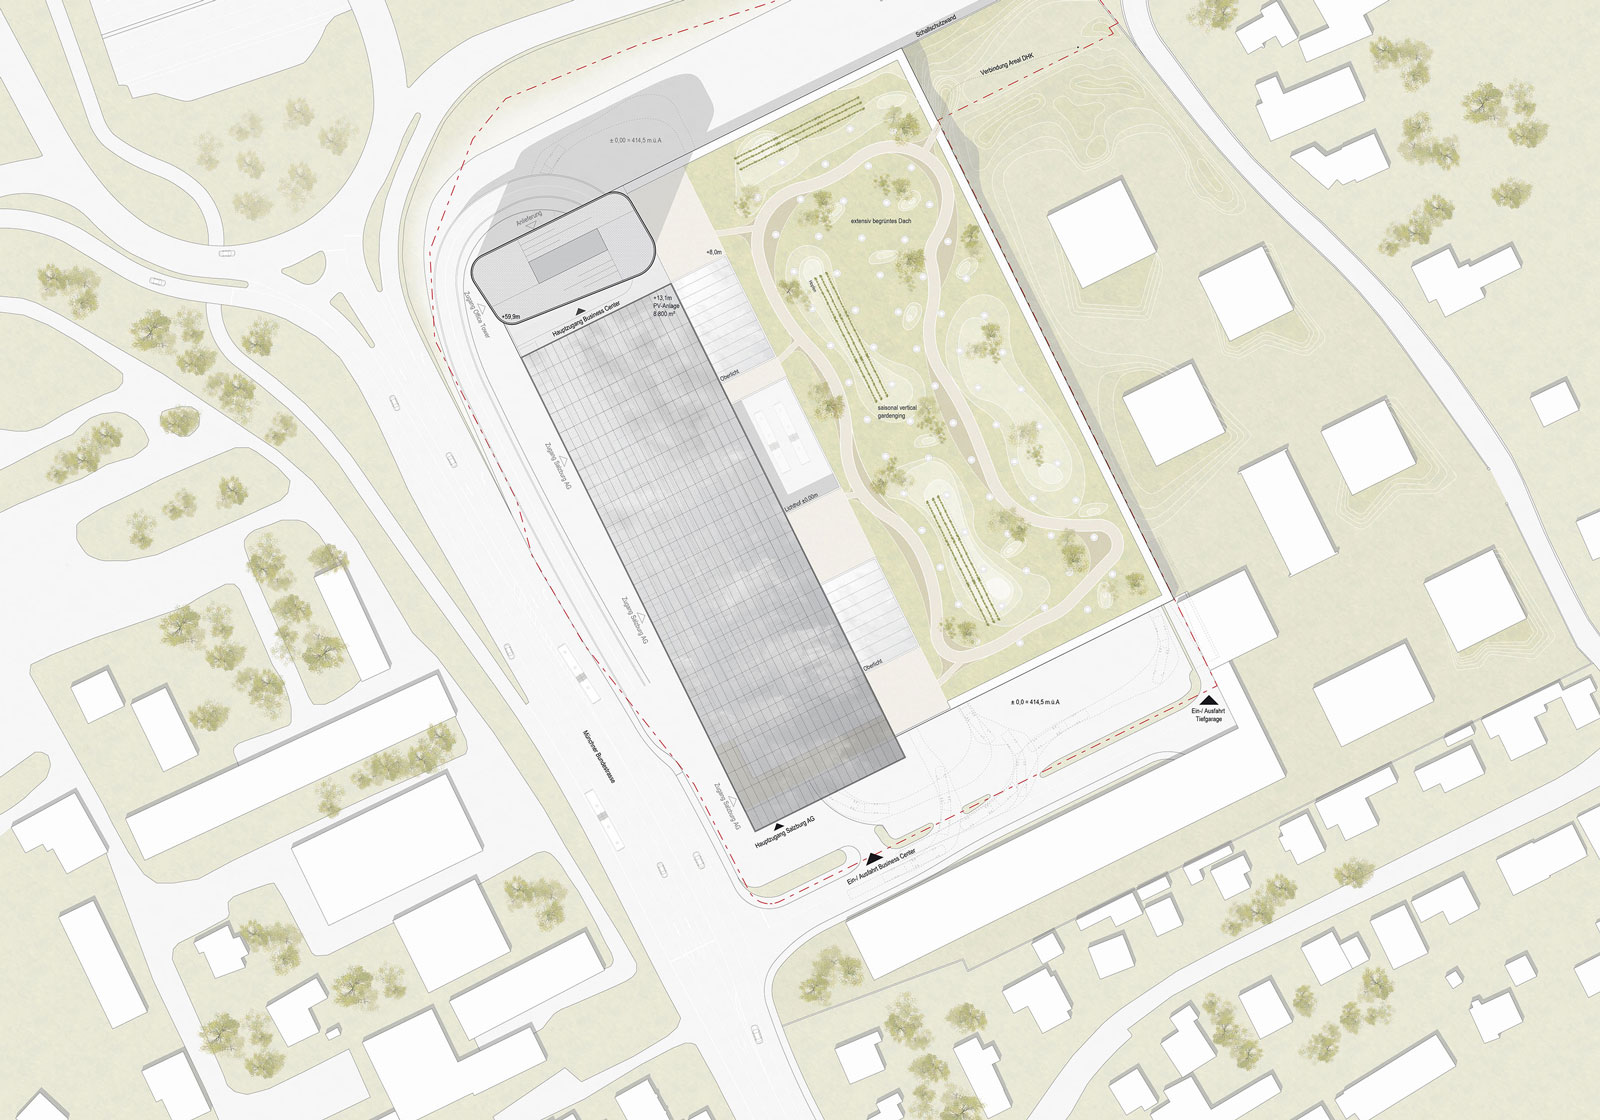 In urban design terms the building complex slips in sensitively alongside the neighboring residential district. Visualization: ATP Innsbruck